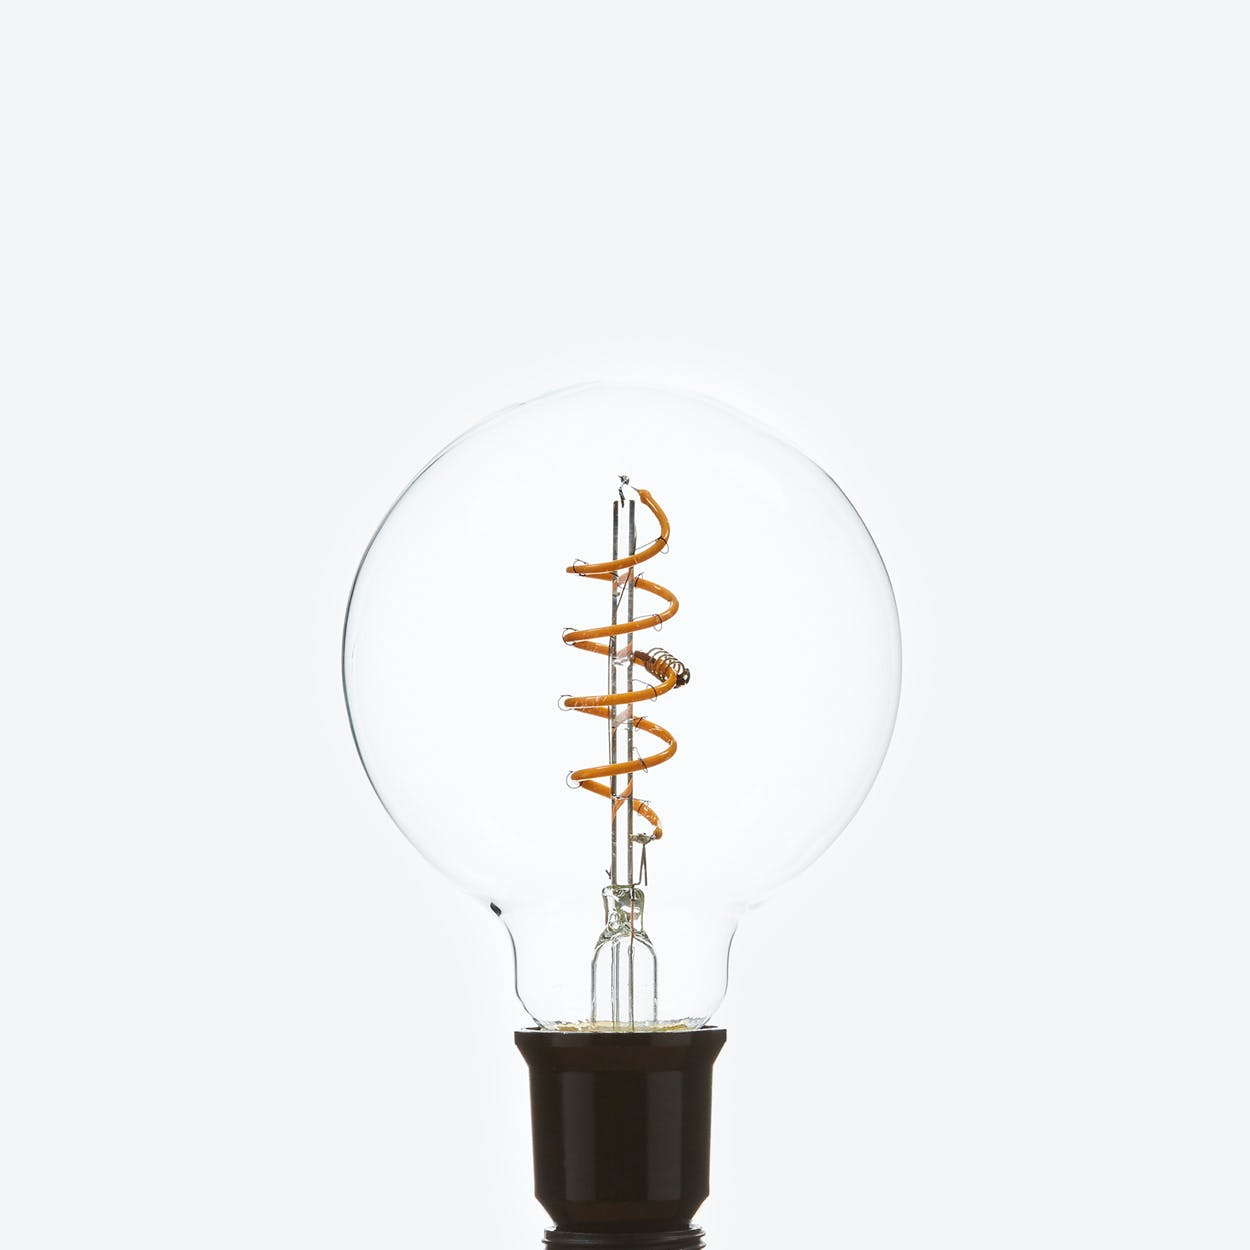 Luna LED Filament Light Bulb